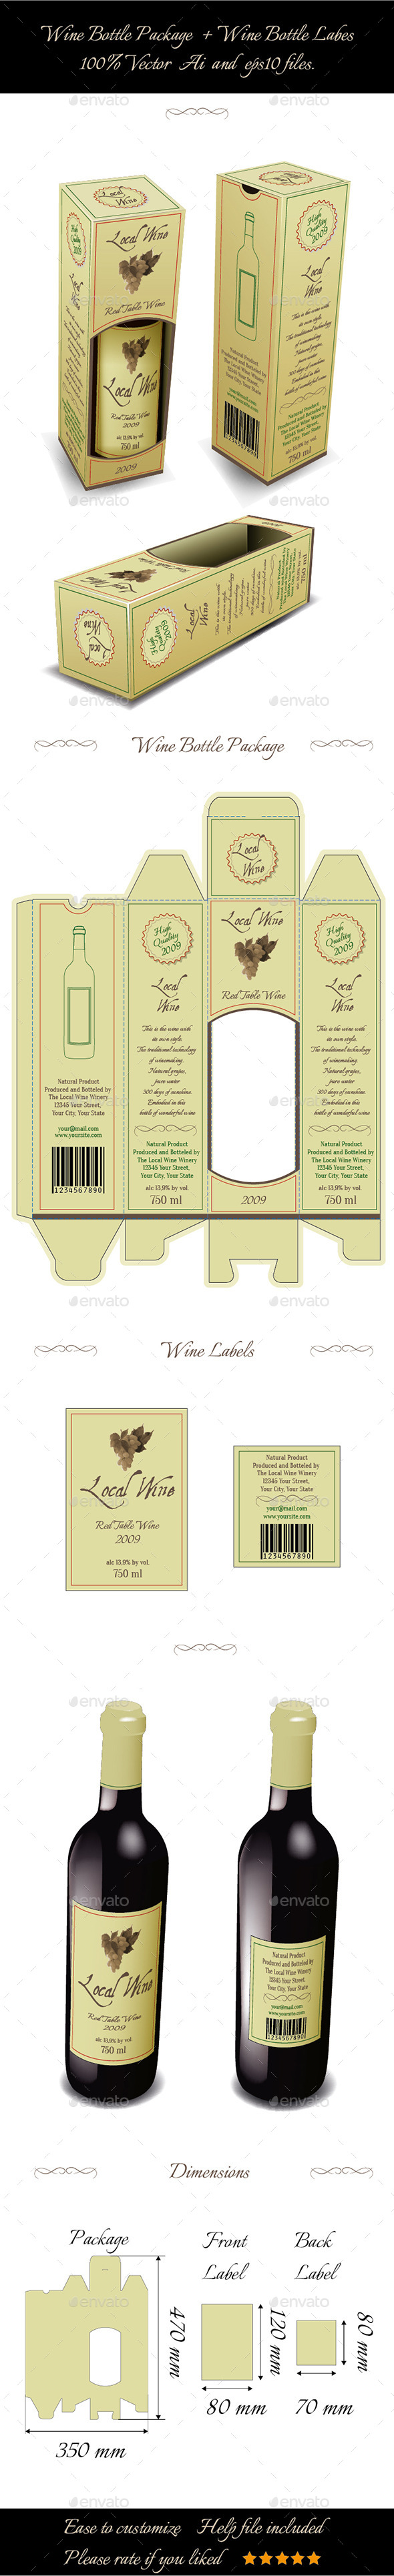 GraphicRiver Wine Bottle Package And Bottle Labels 9153969